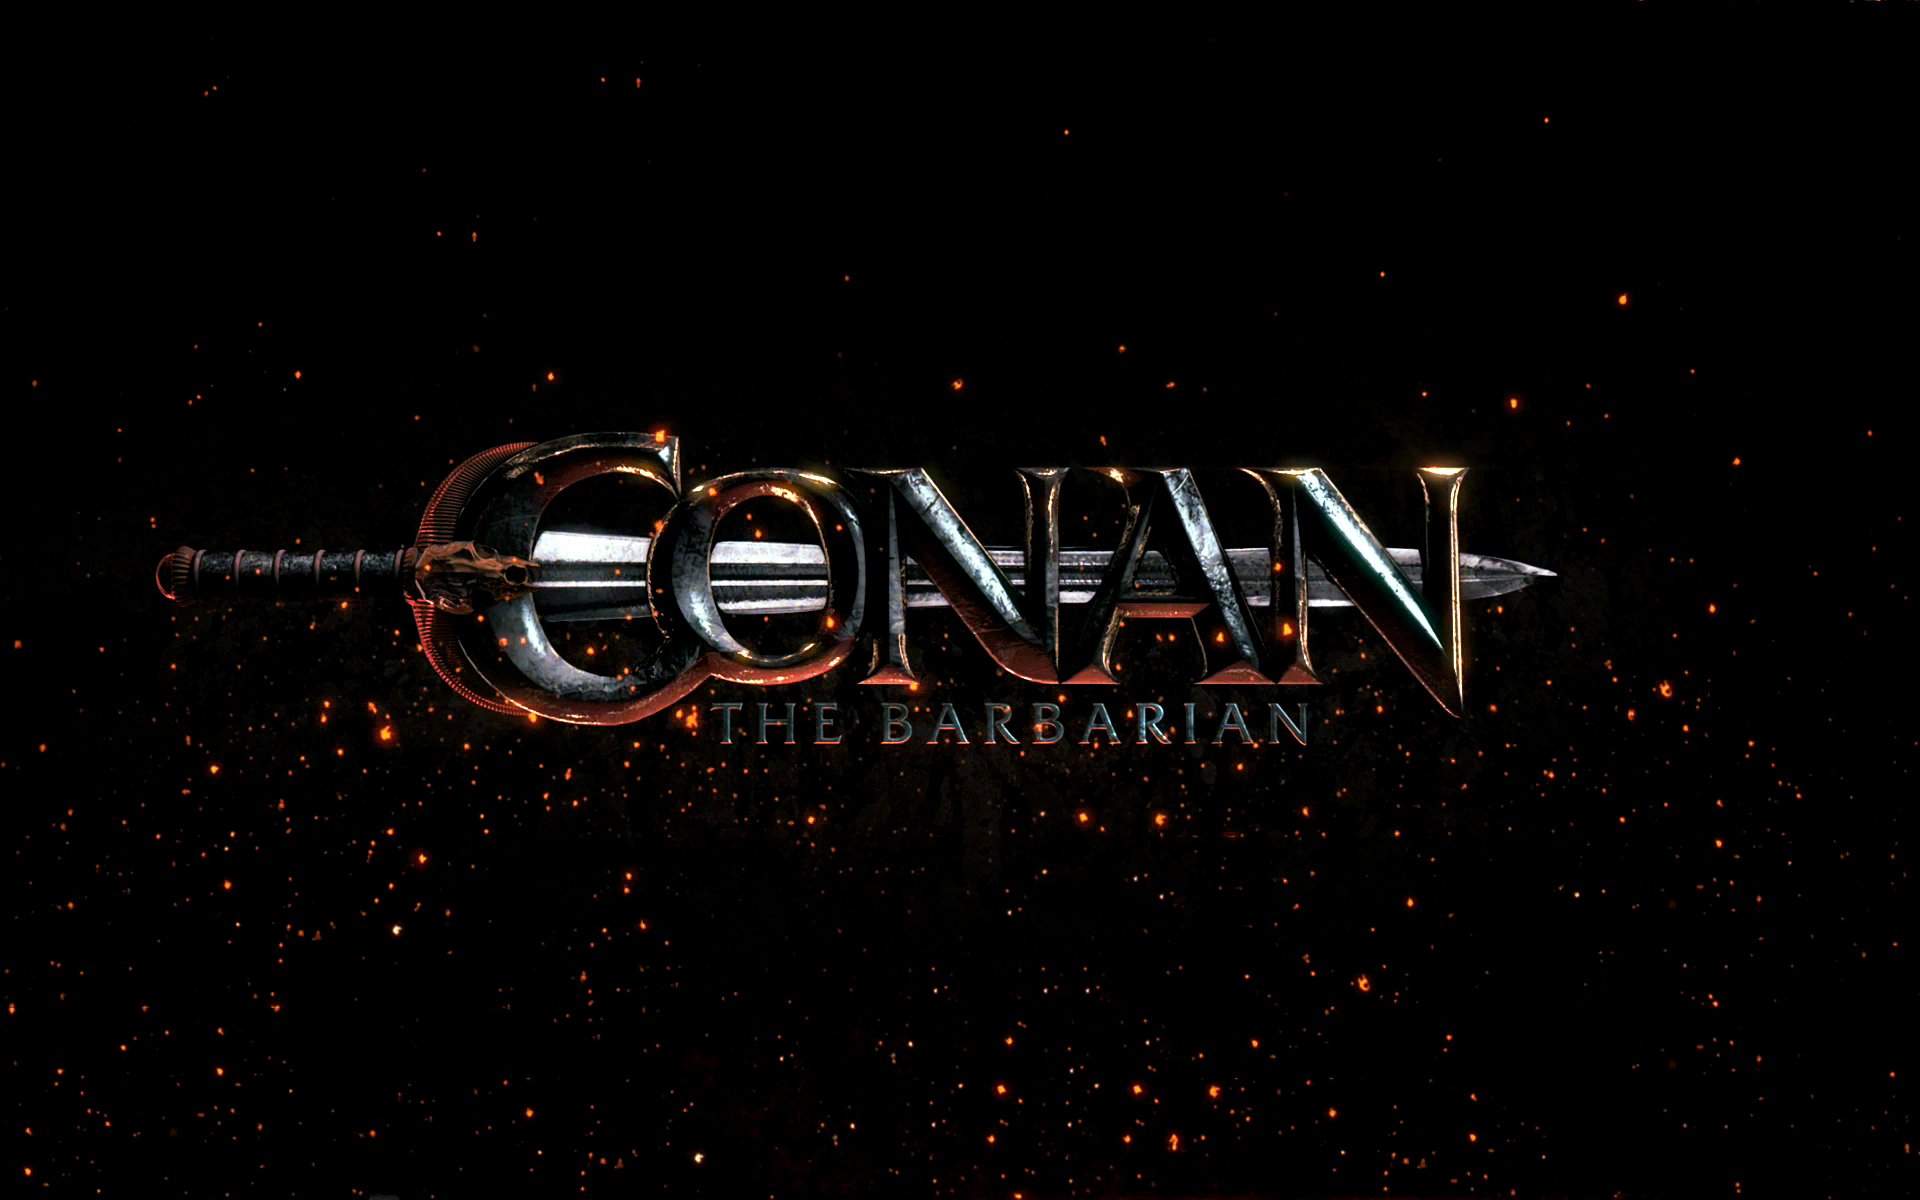 Conan The Barbarian Art Wallpaper for Pinterest 1920x1200